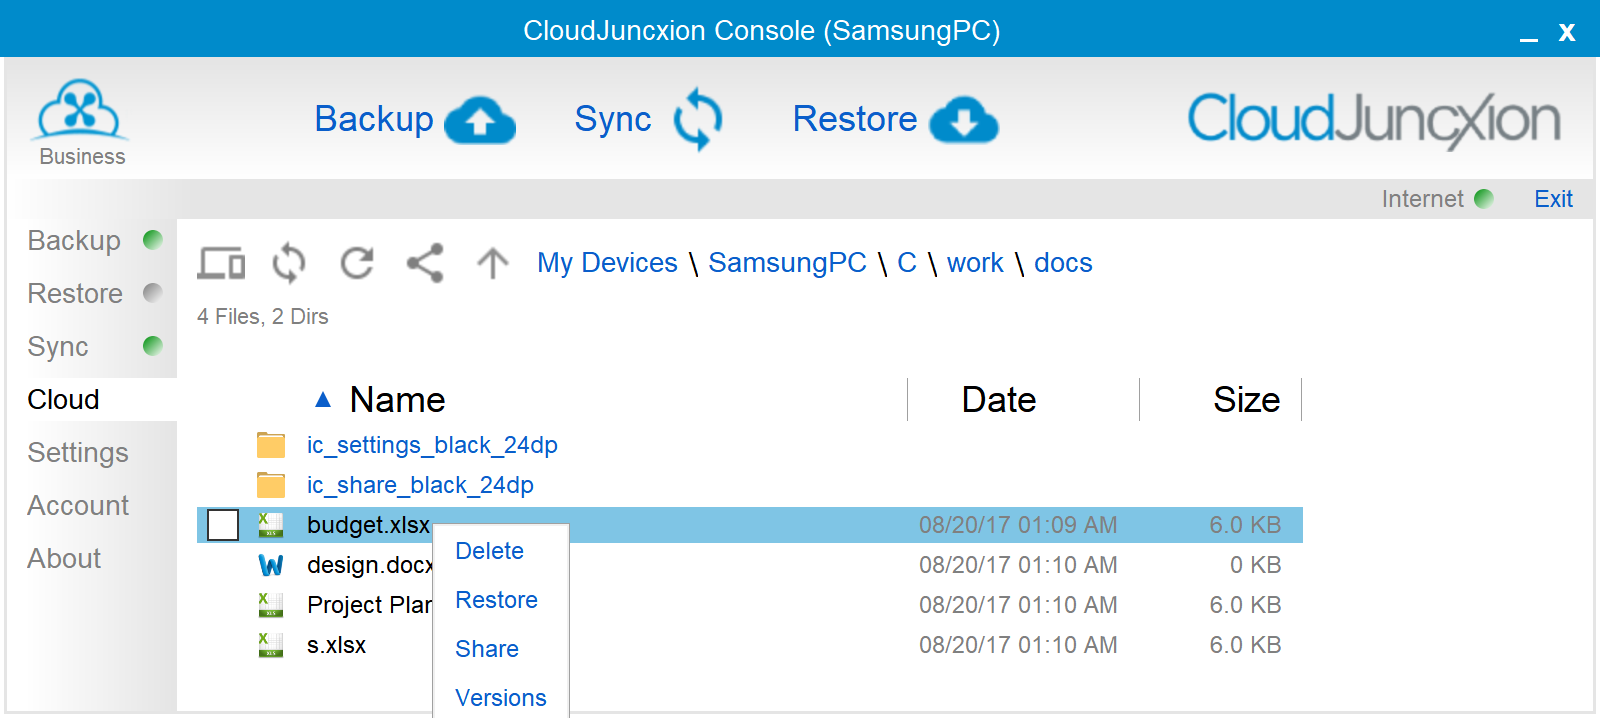 CloudJuncxion Share by right-clicking in the Cloud panel of the Console